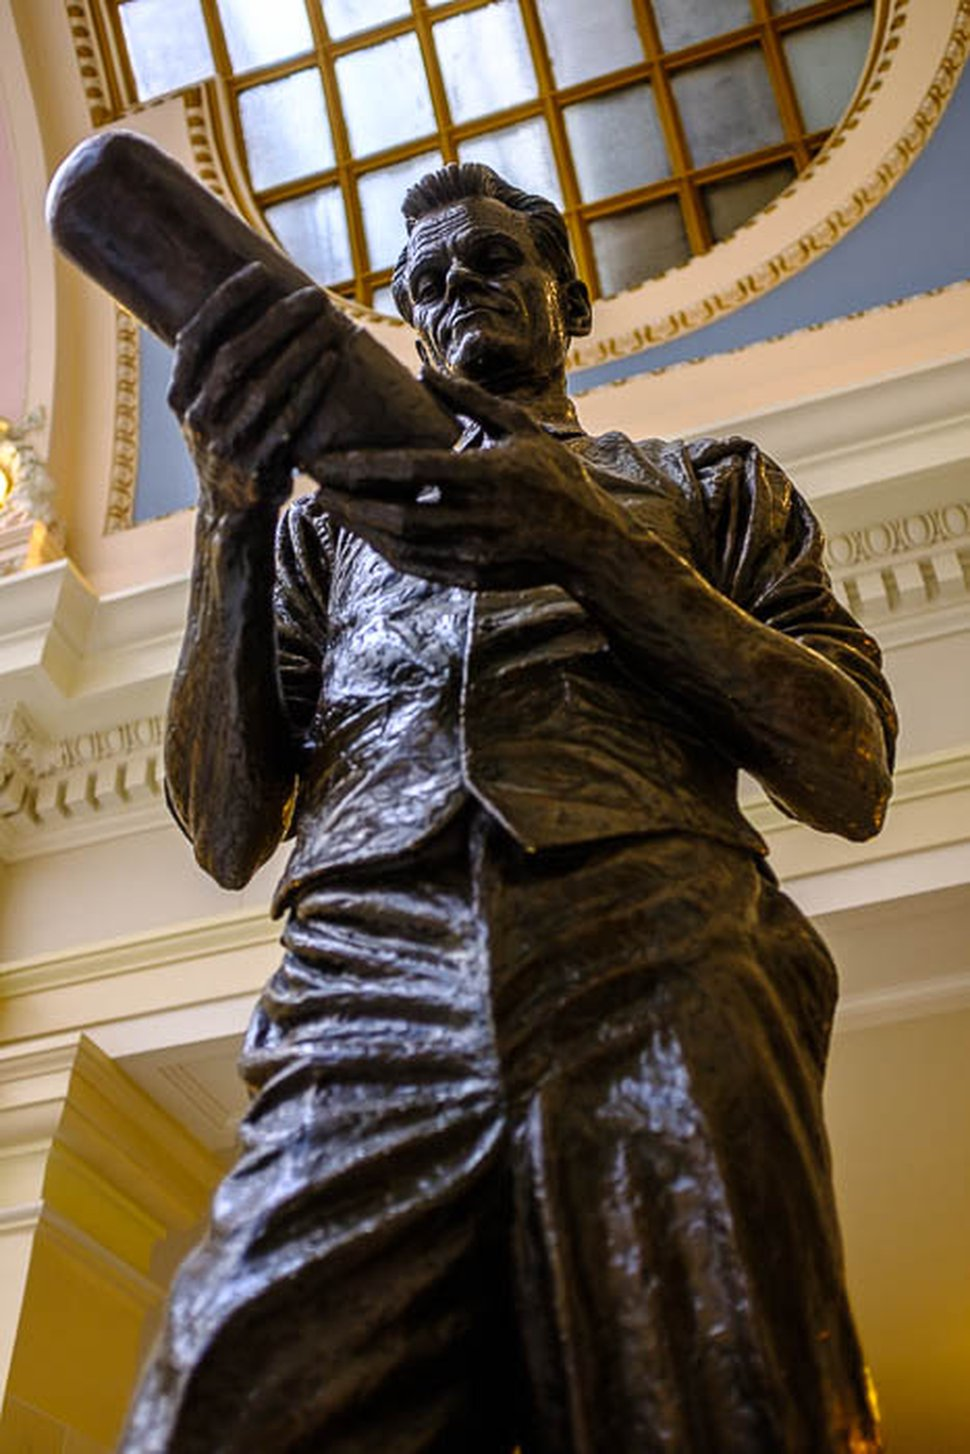 (Trent Nelson | The Salt Lake Tribune) James R. Avati's statue of Philo T. Farnsworth, known as the